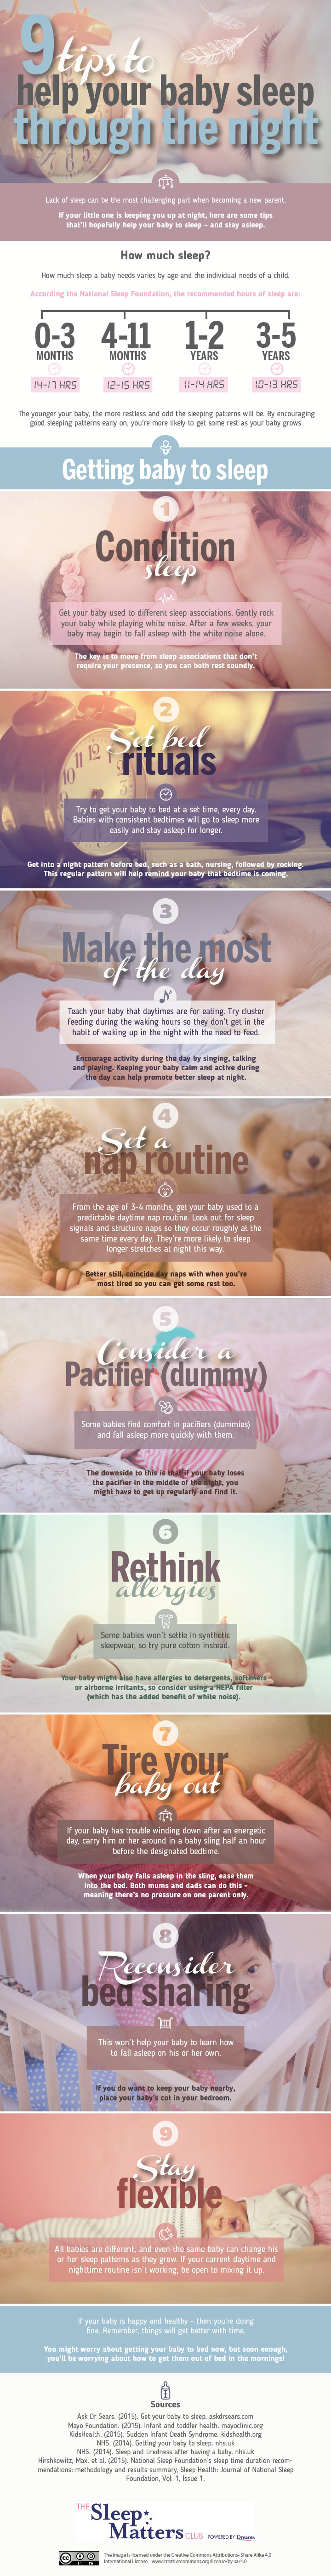 9 Tips For Helping Your Baby Sleep Through The Night